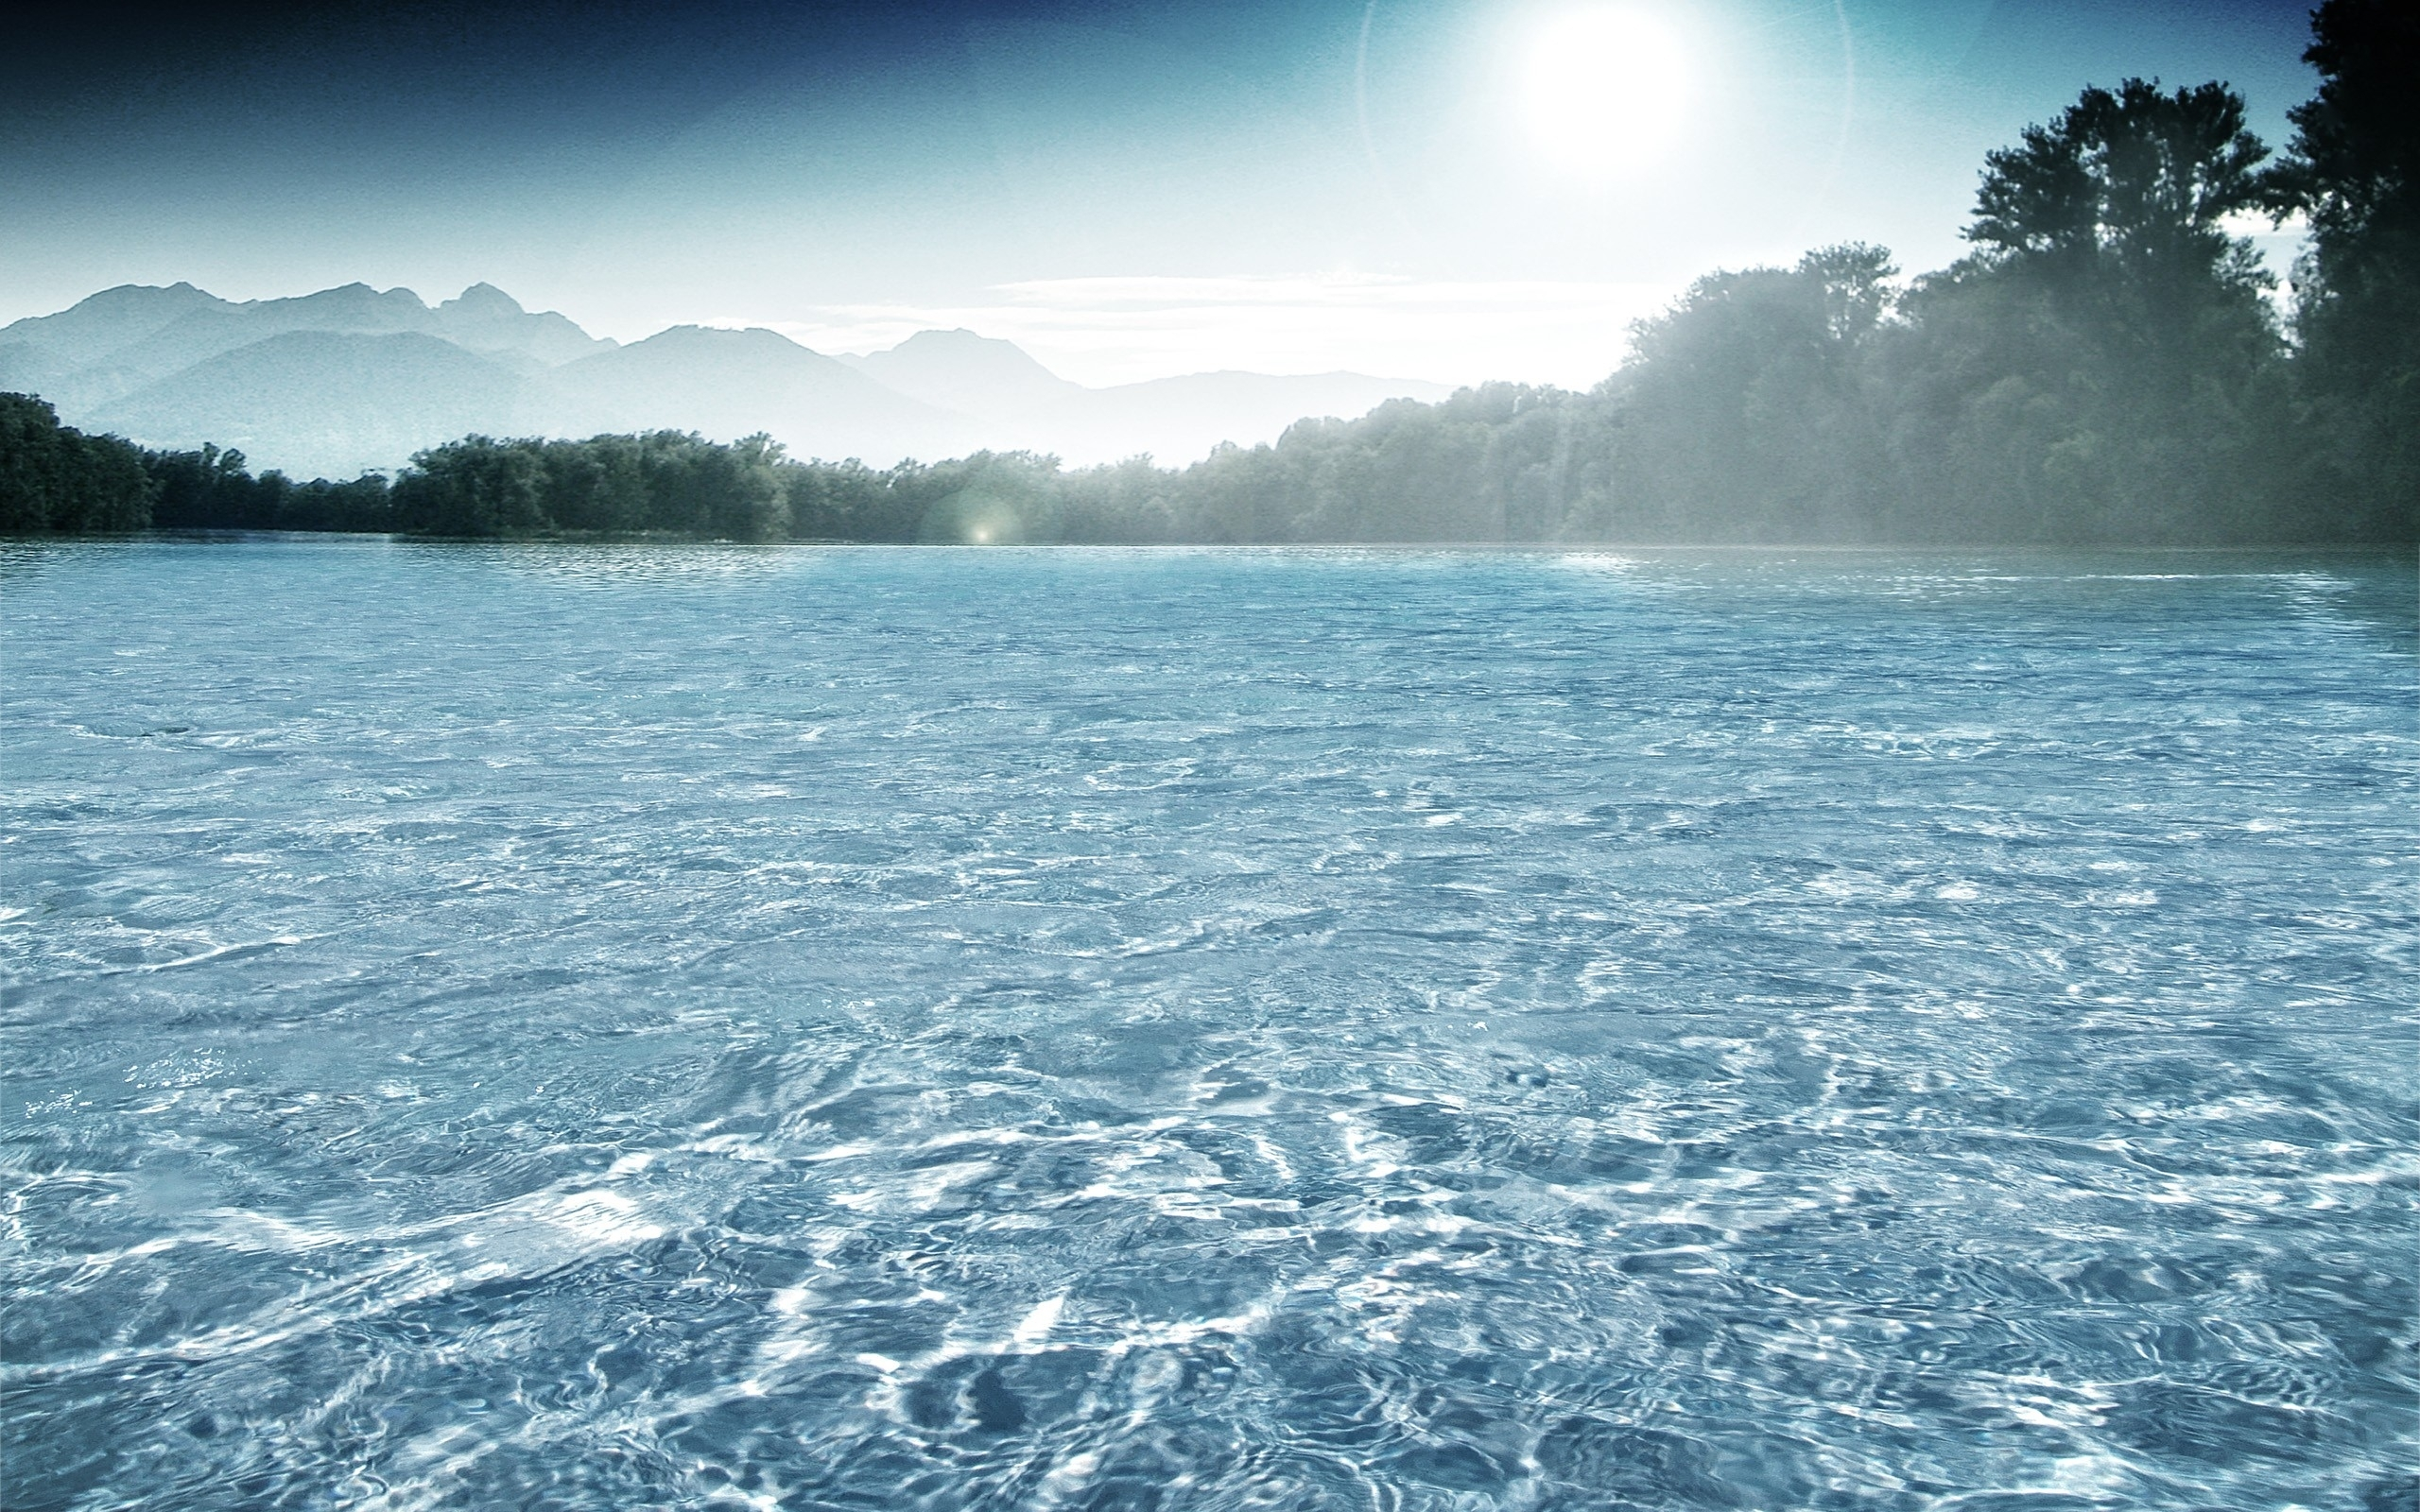 Clear Water Lake In Forest Wallpaper - bliblinews.com